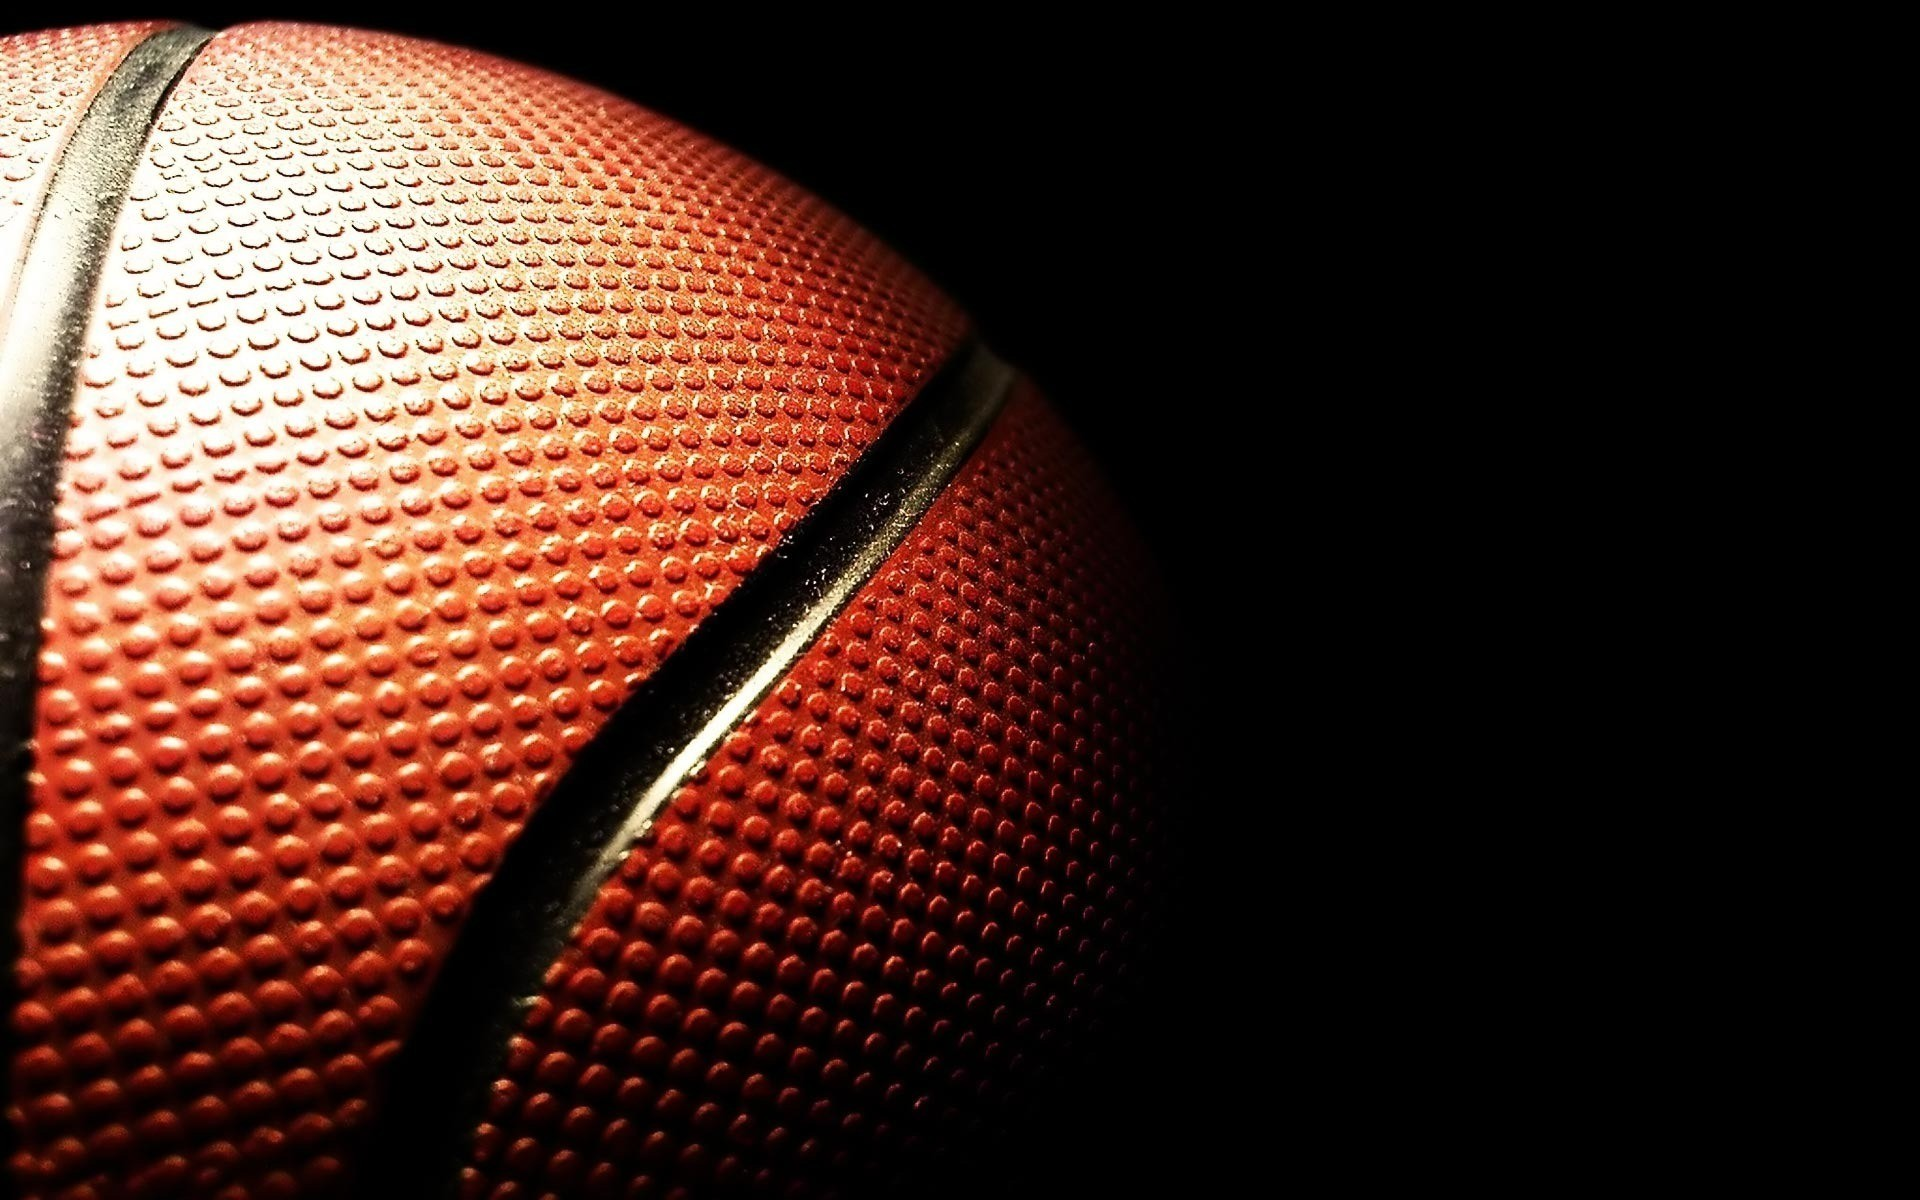 1920x1200 Basketball Wallpaper 286